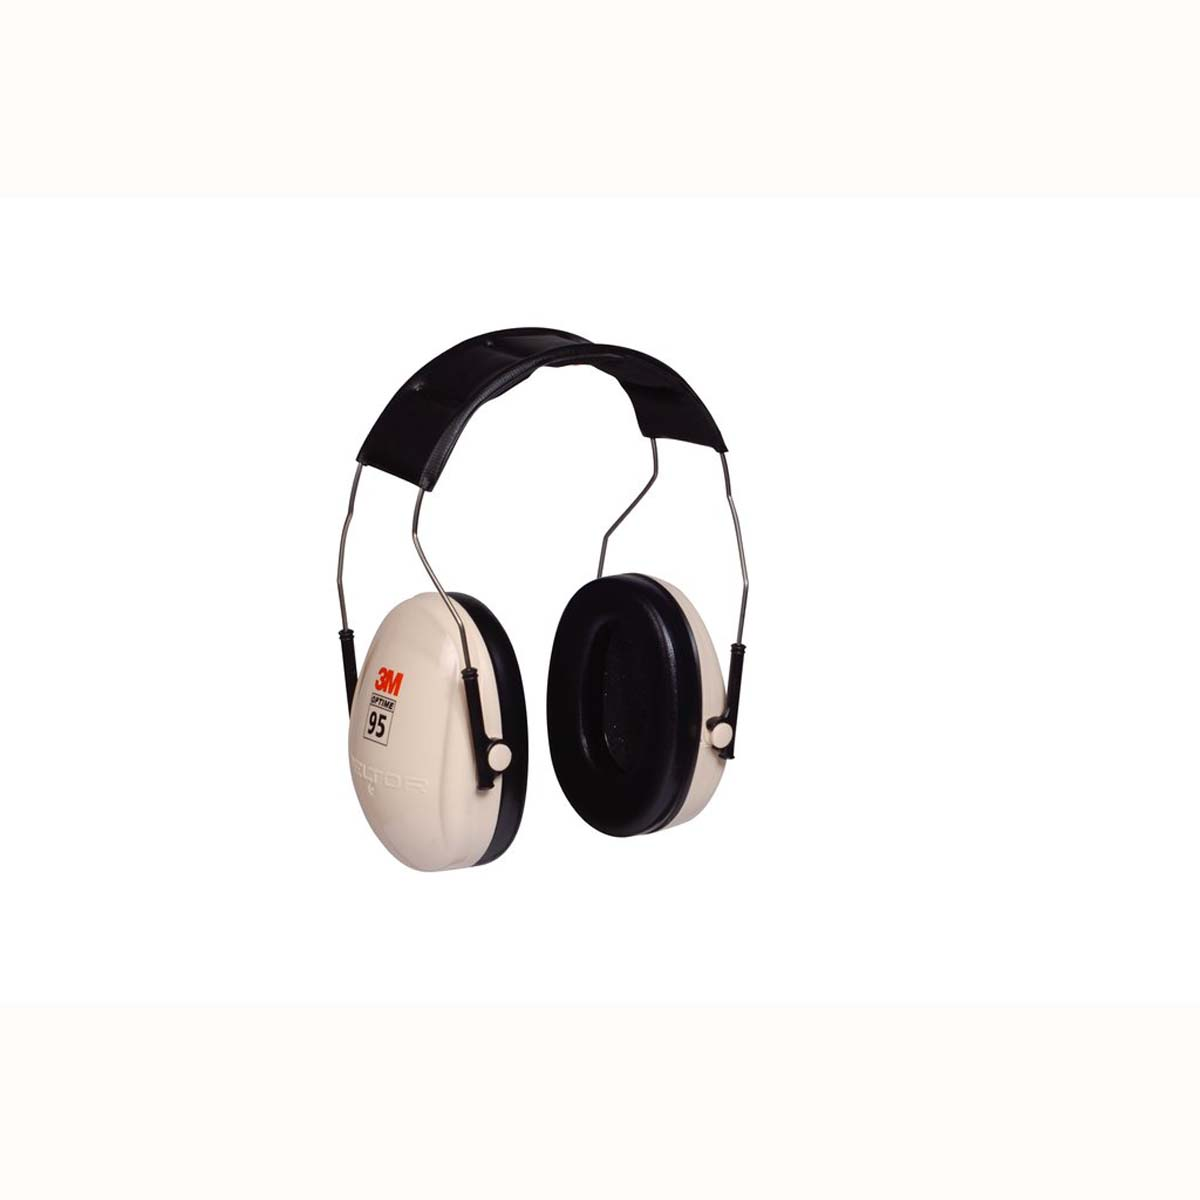 "3Mâ""¢ PELTORâ""¢ Optimeâ""¢ 95 Over-the-Head Earmuffs H6A/V"